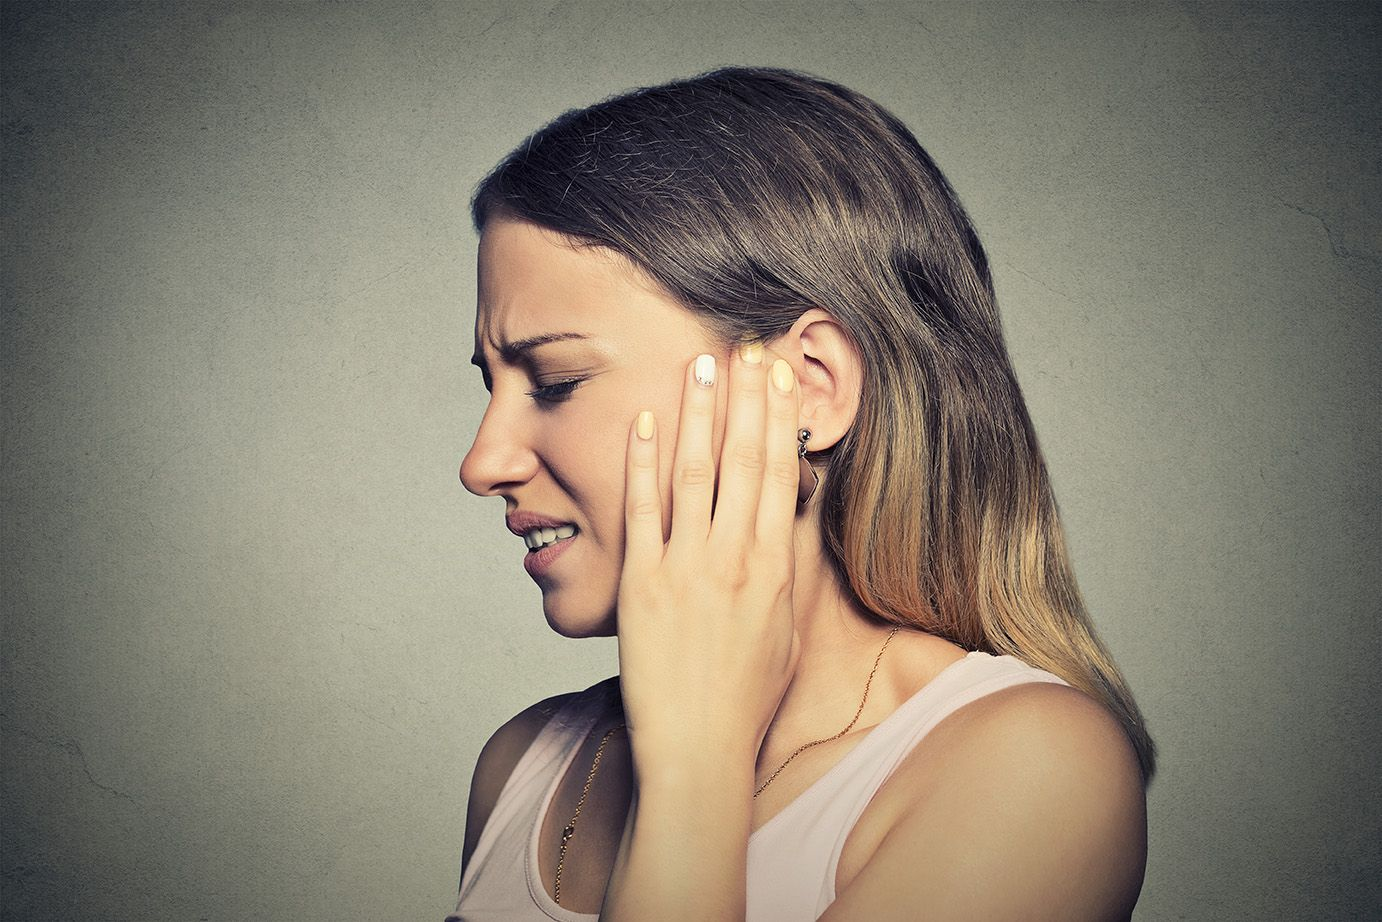 Pain from TMJ disorder